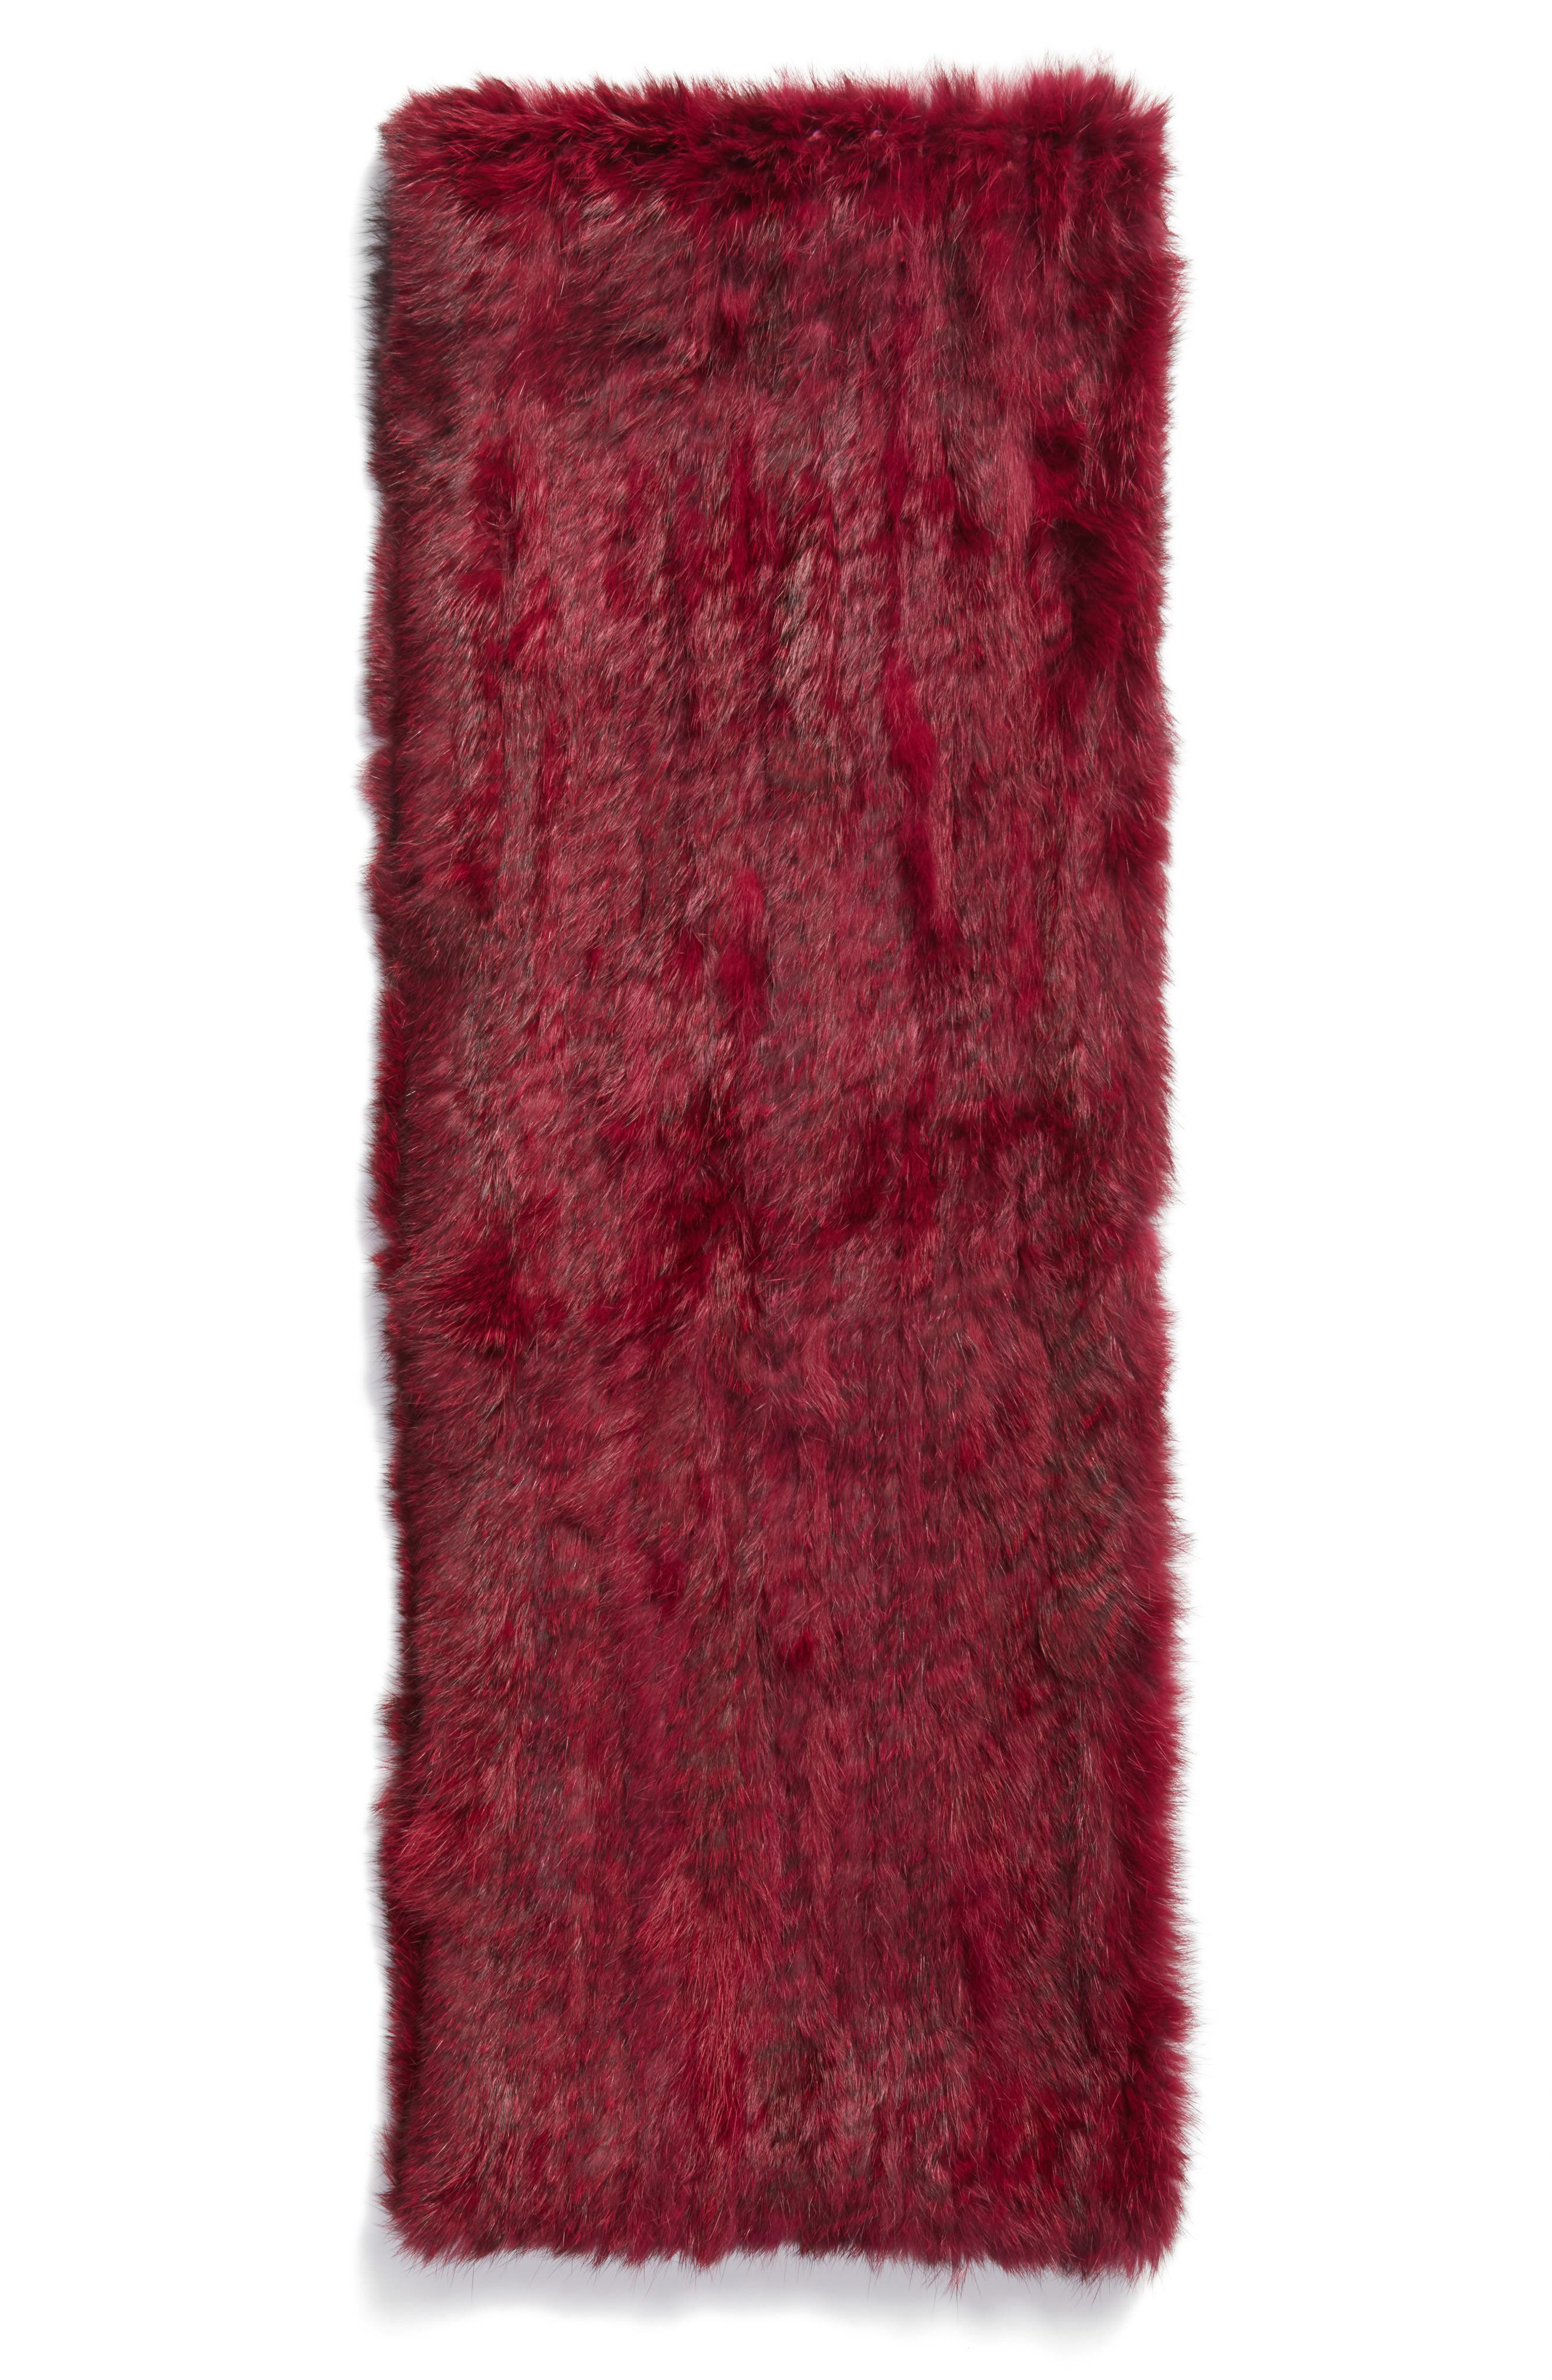 Overdyed Genuine Rabbit Fur Infinity Scarf,                             Alternate thumbnail 2, color,                             Ruby